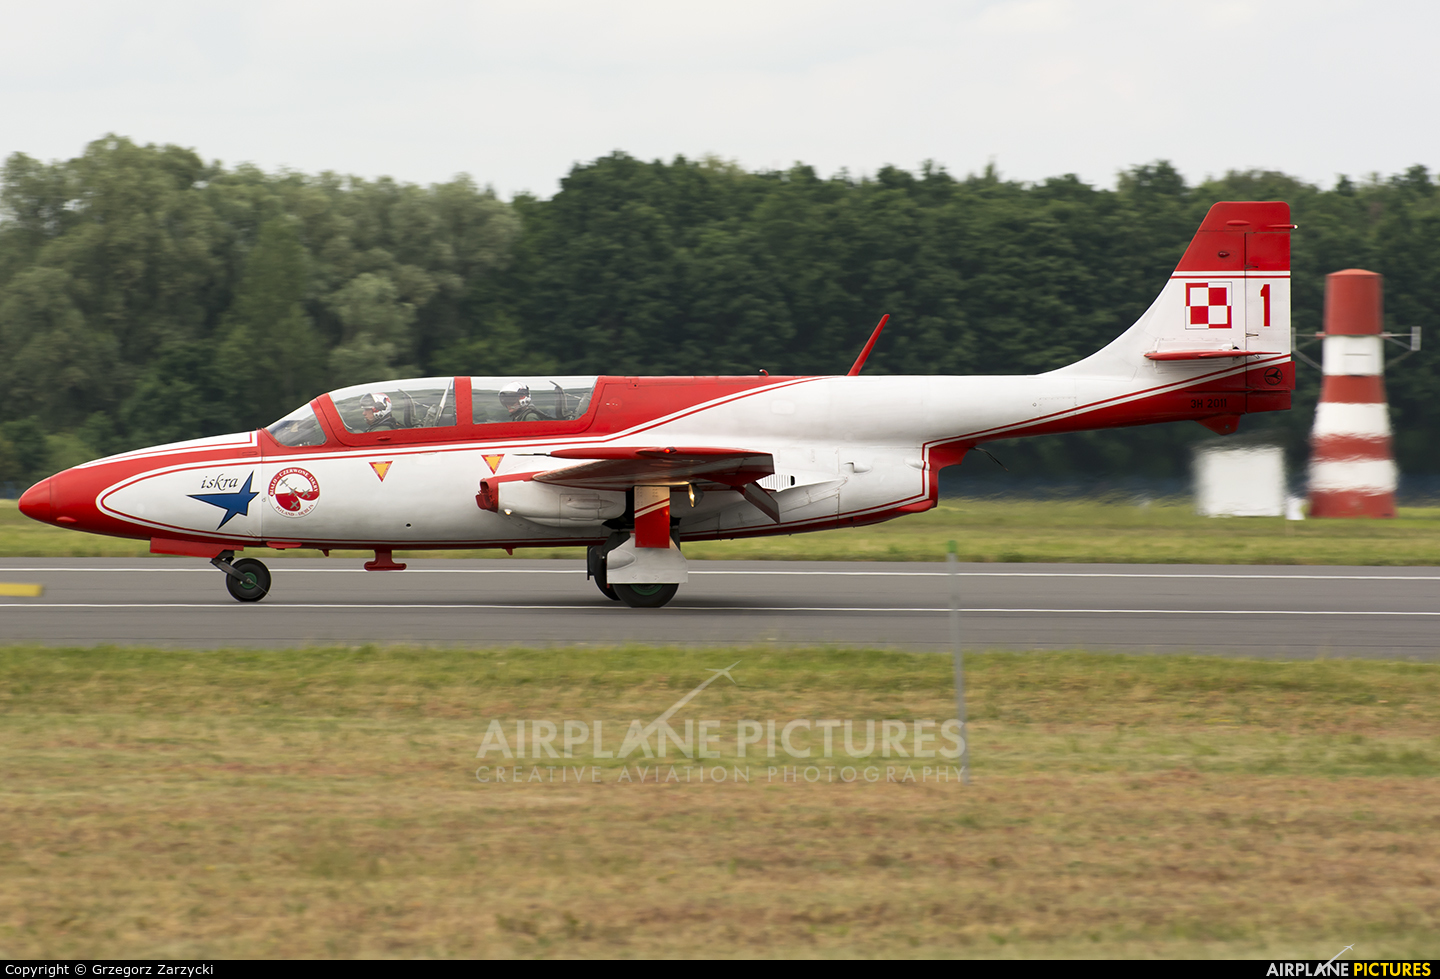 Poland - Air Force: White & Red Iskras 1 aircraft at Dęblin